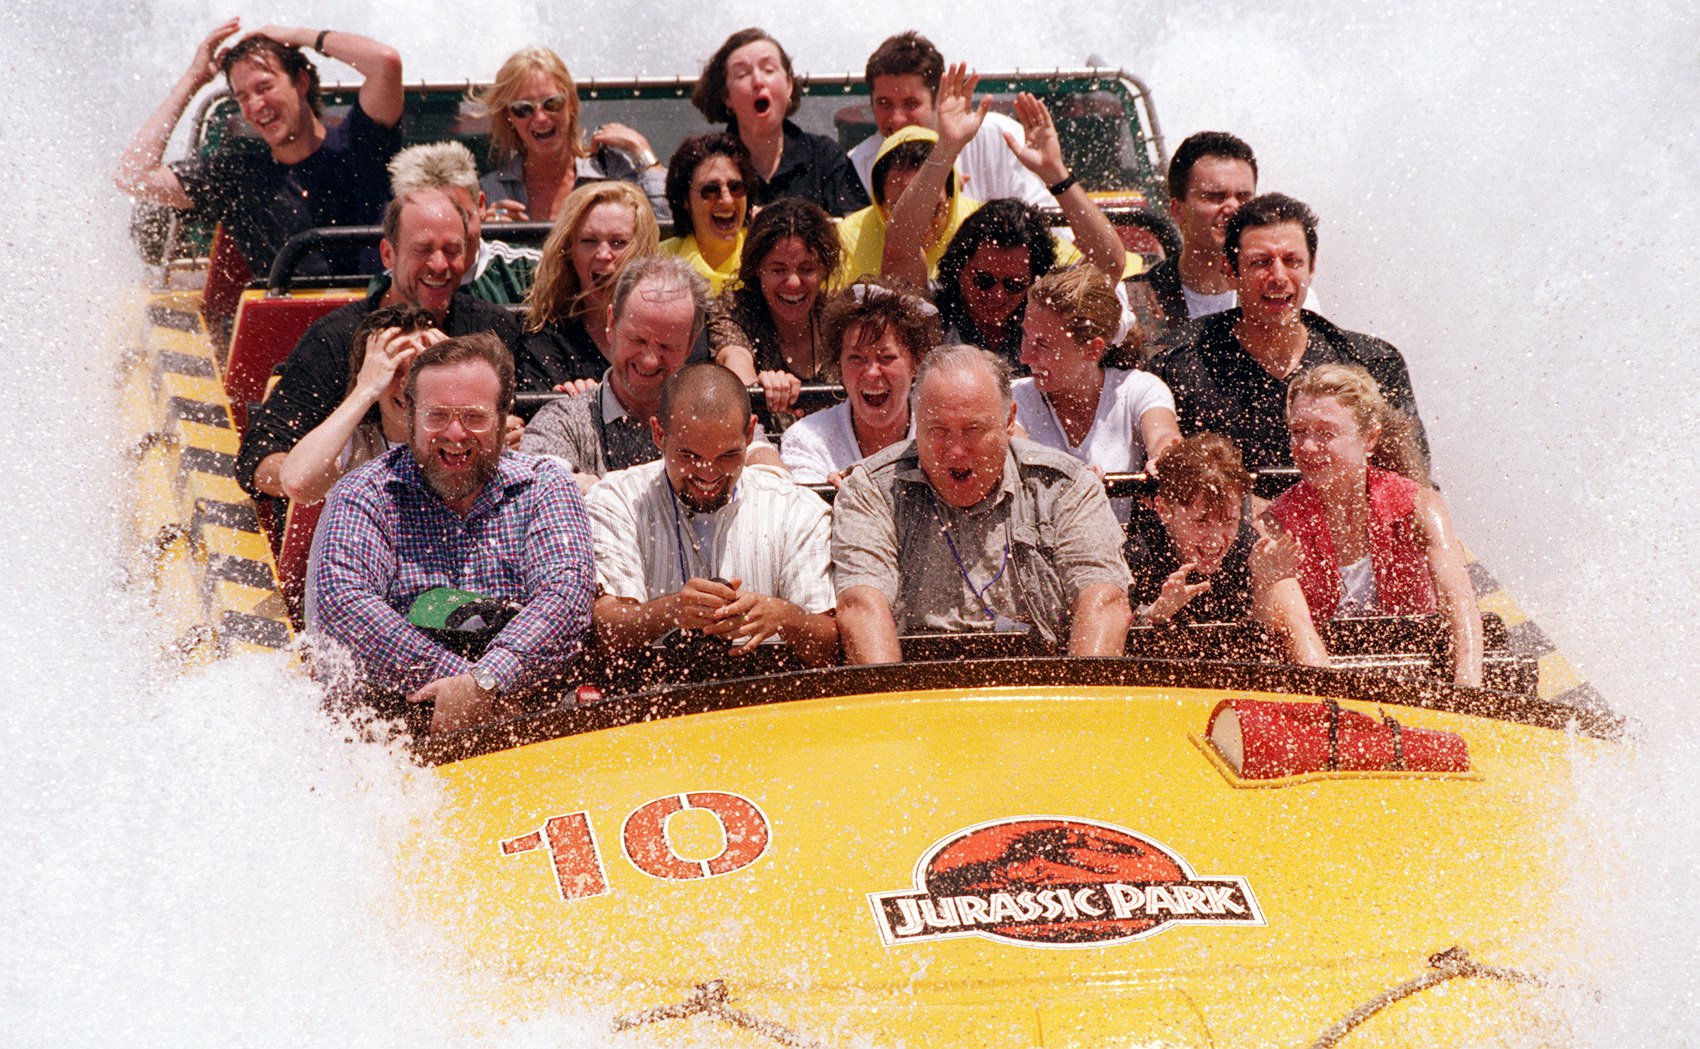 Jurassic Park ride is cancelled as Universal Studios Hollywood announces reboot